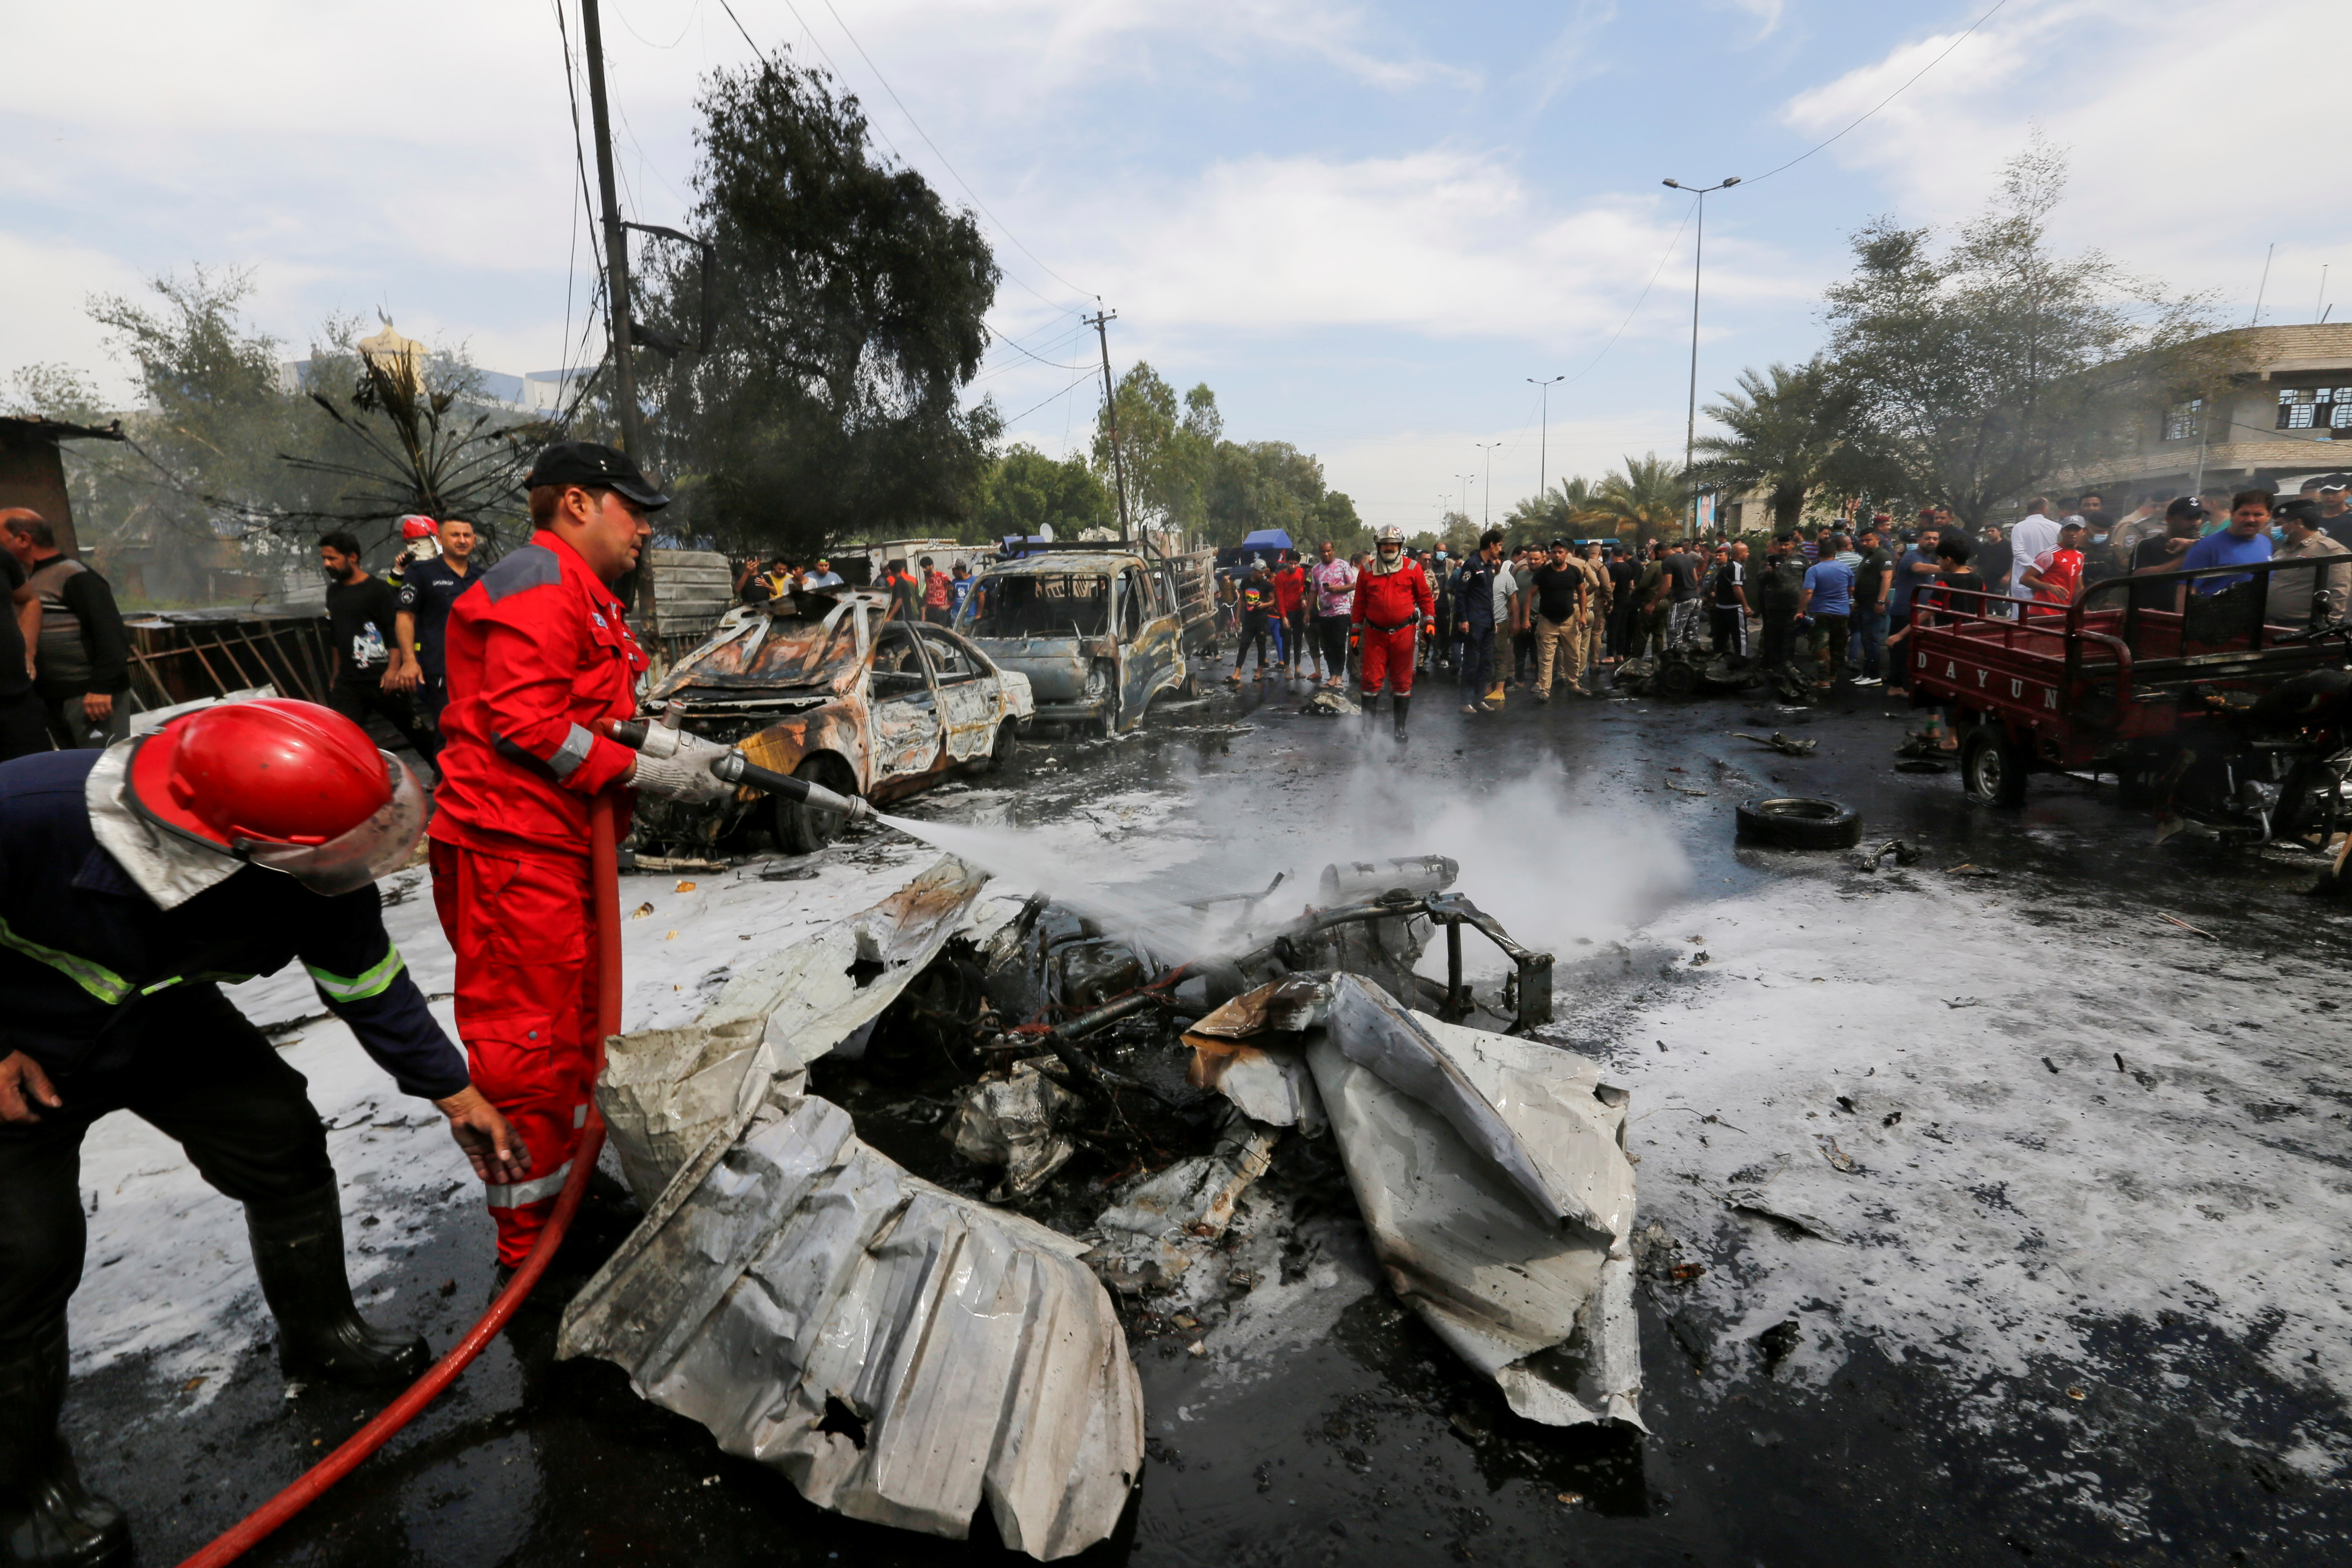 Firefighters inspect the site of a car bomb attack in Sadr City district of Baghdad, Iraq April 15, 2021. REUTERS/Wissam al-Okili